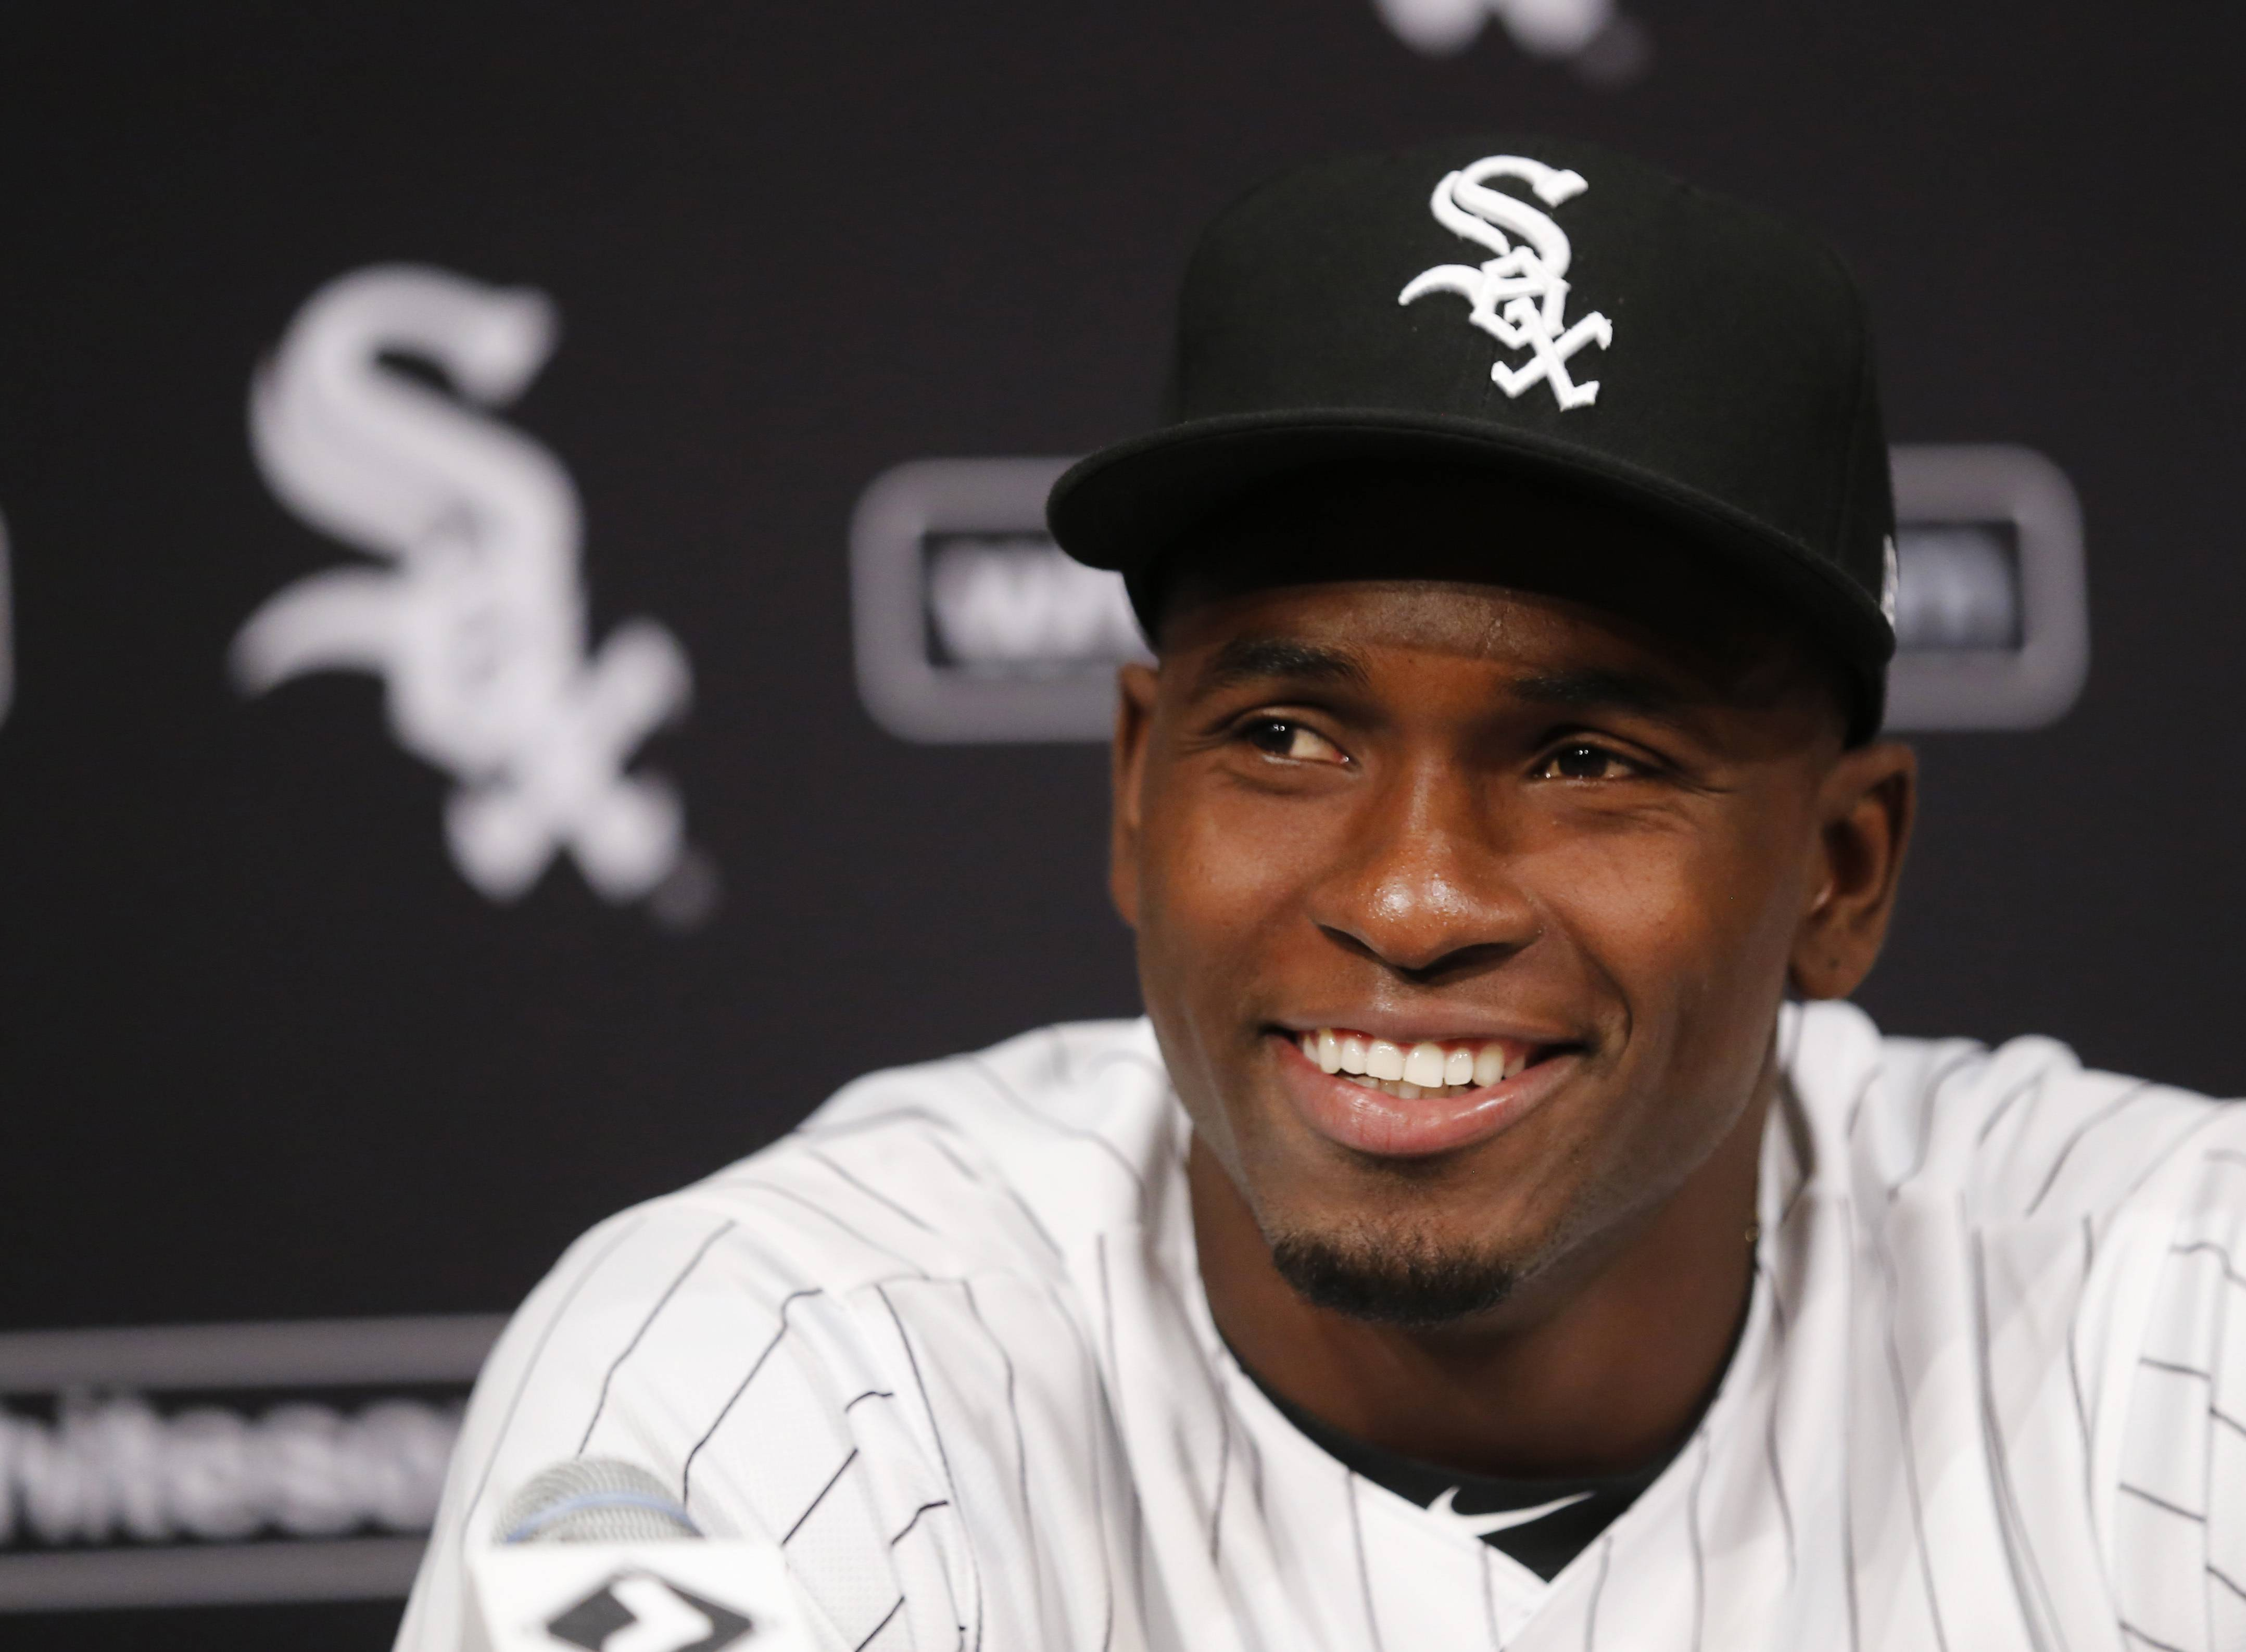 Cuban outfielder Luis Robert smiles at a news conferences after signing with the Chicago White Sox before a baseball game between the White Sox and the Detroit Tigers on Saturday, May 27, 2017, in Chicago.